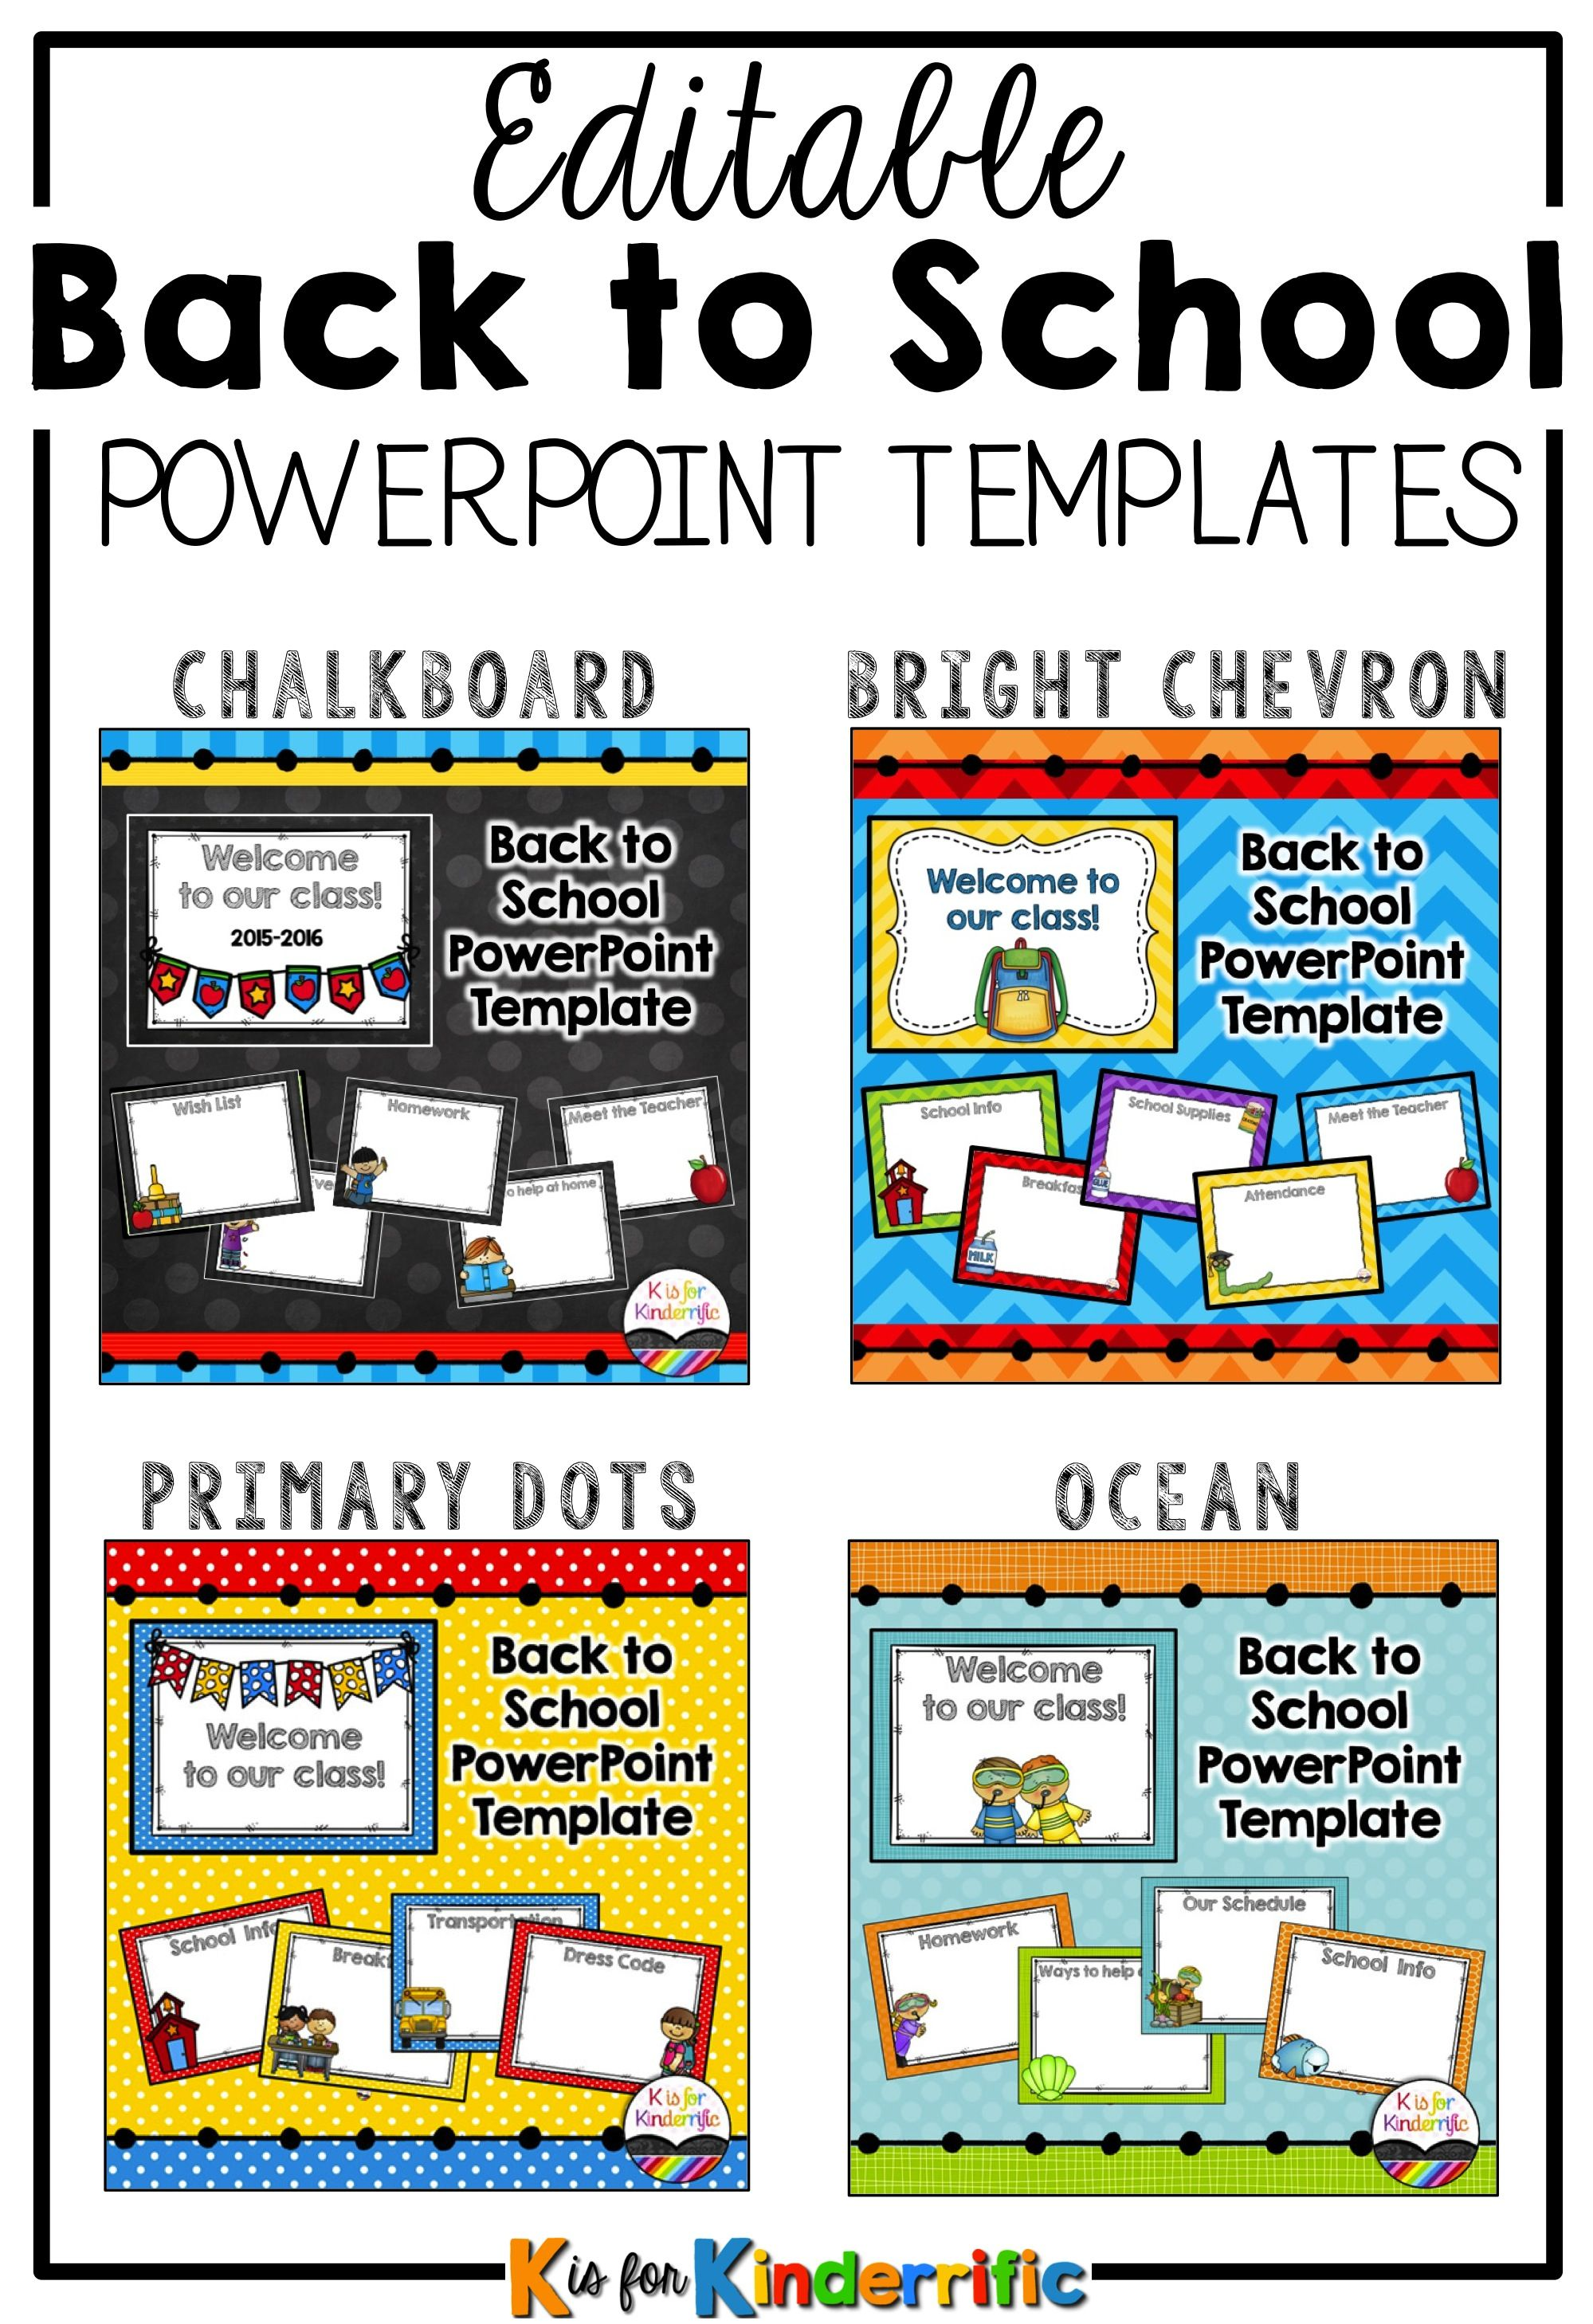 Editable Powerpoint Templates Designed Especially For Elementary